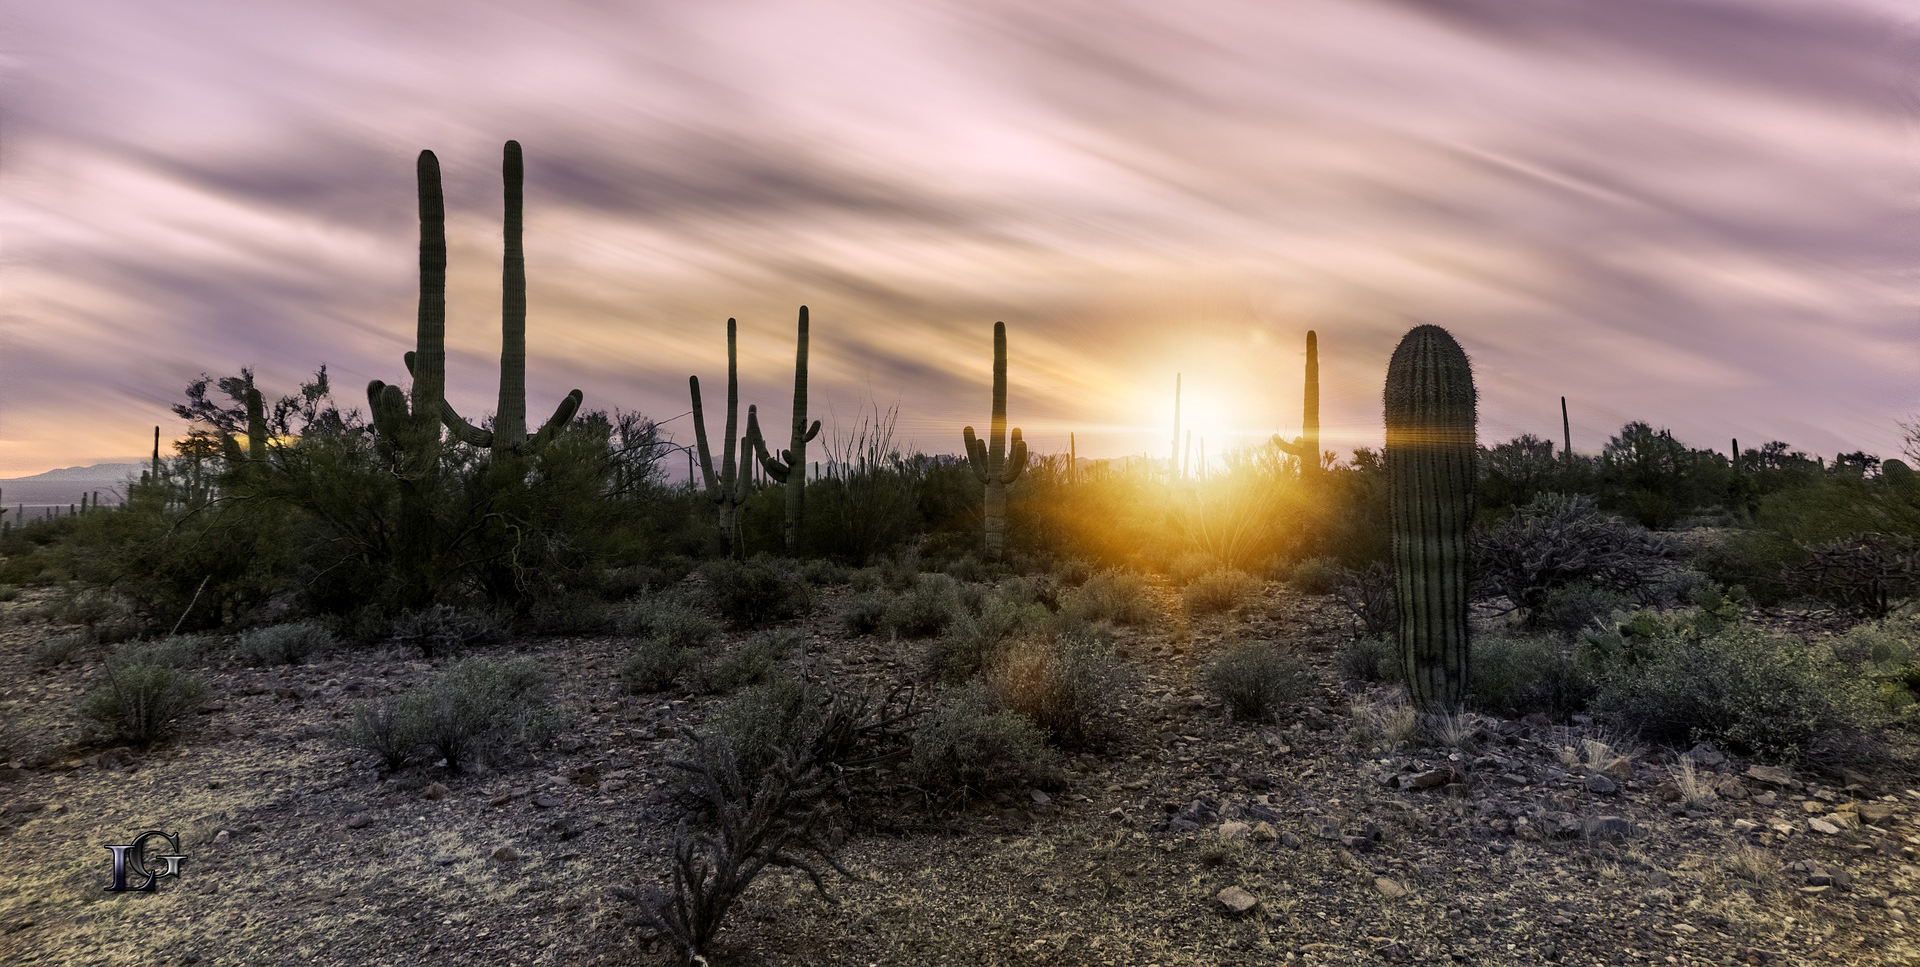 Arizona landscape with cactus